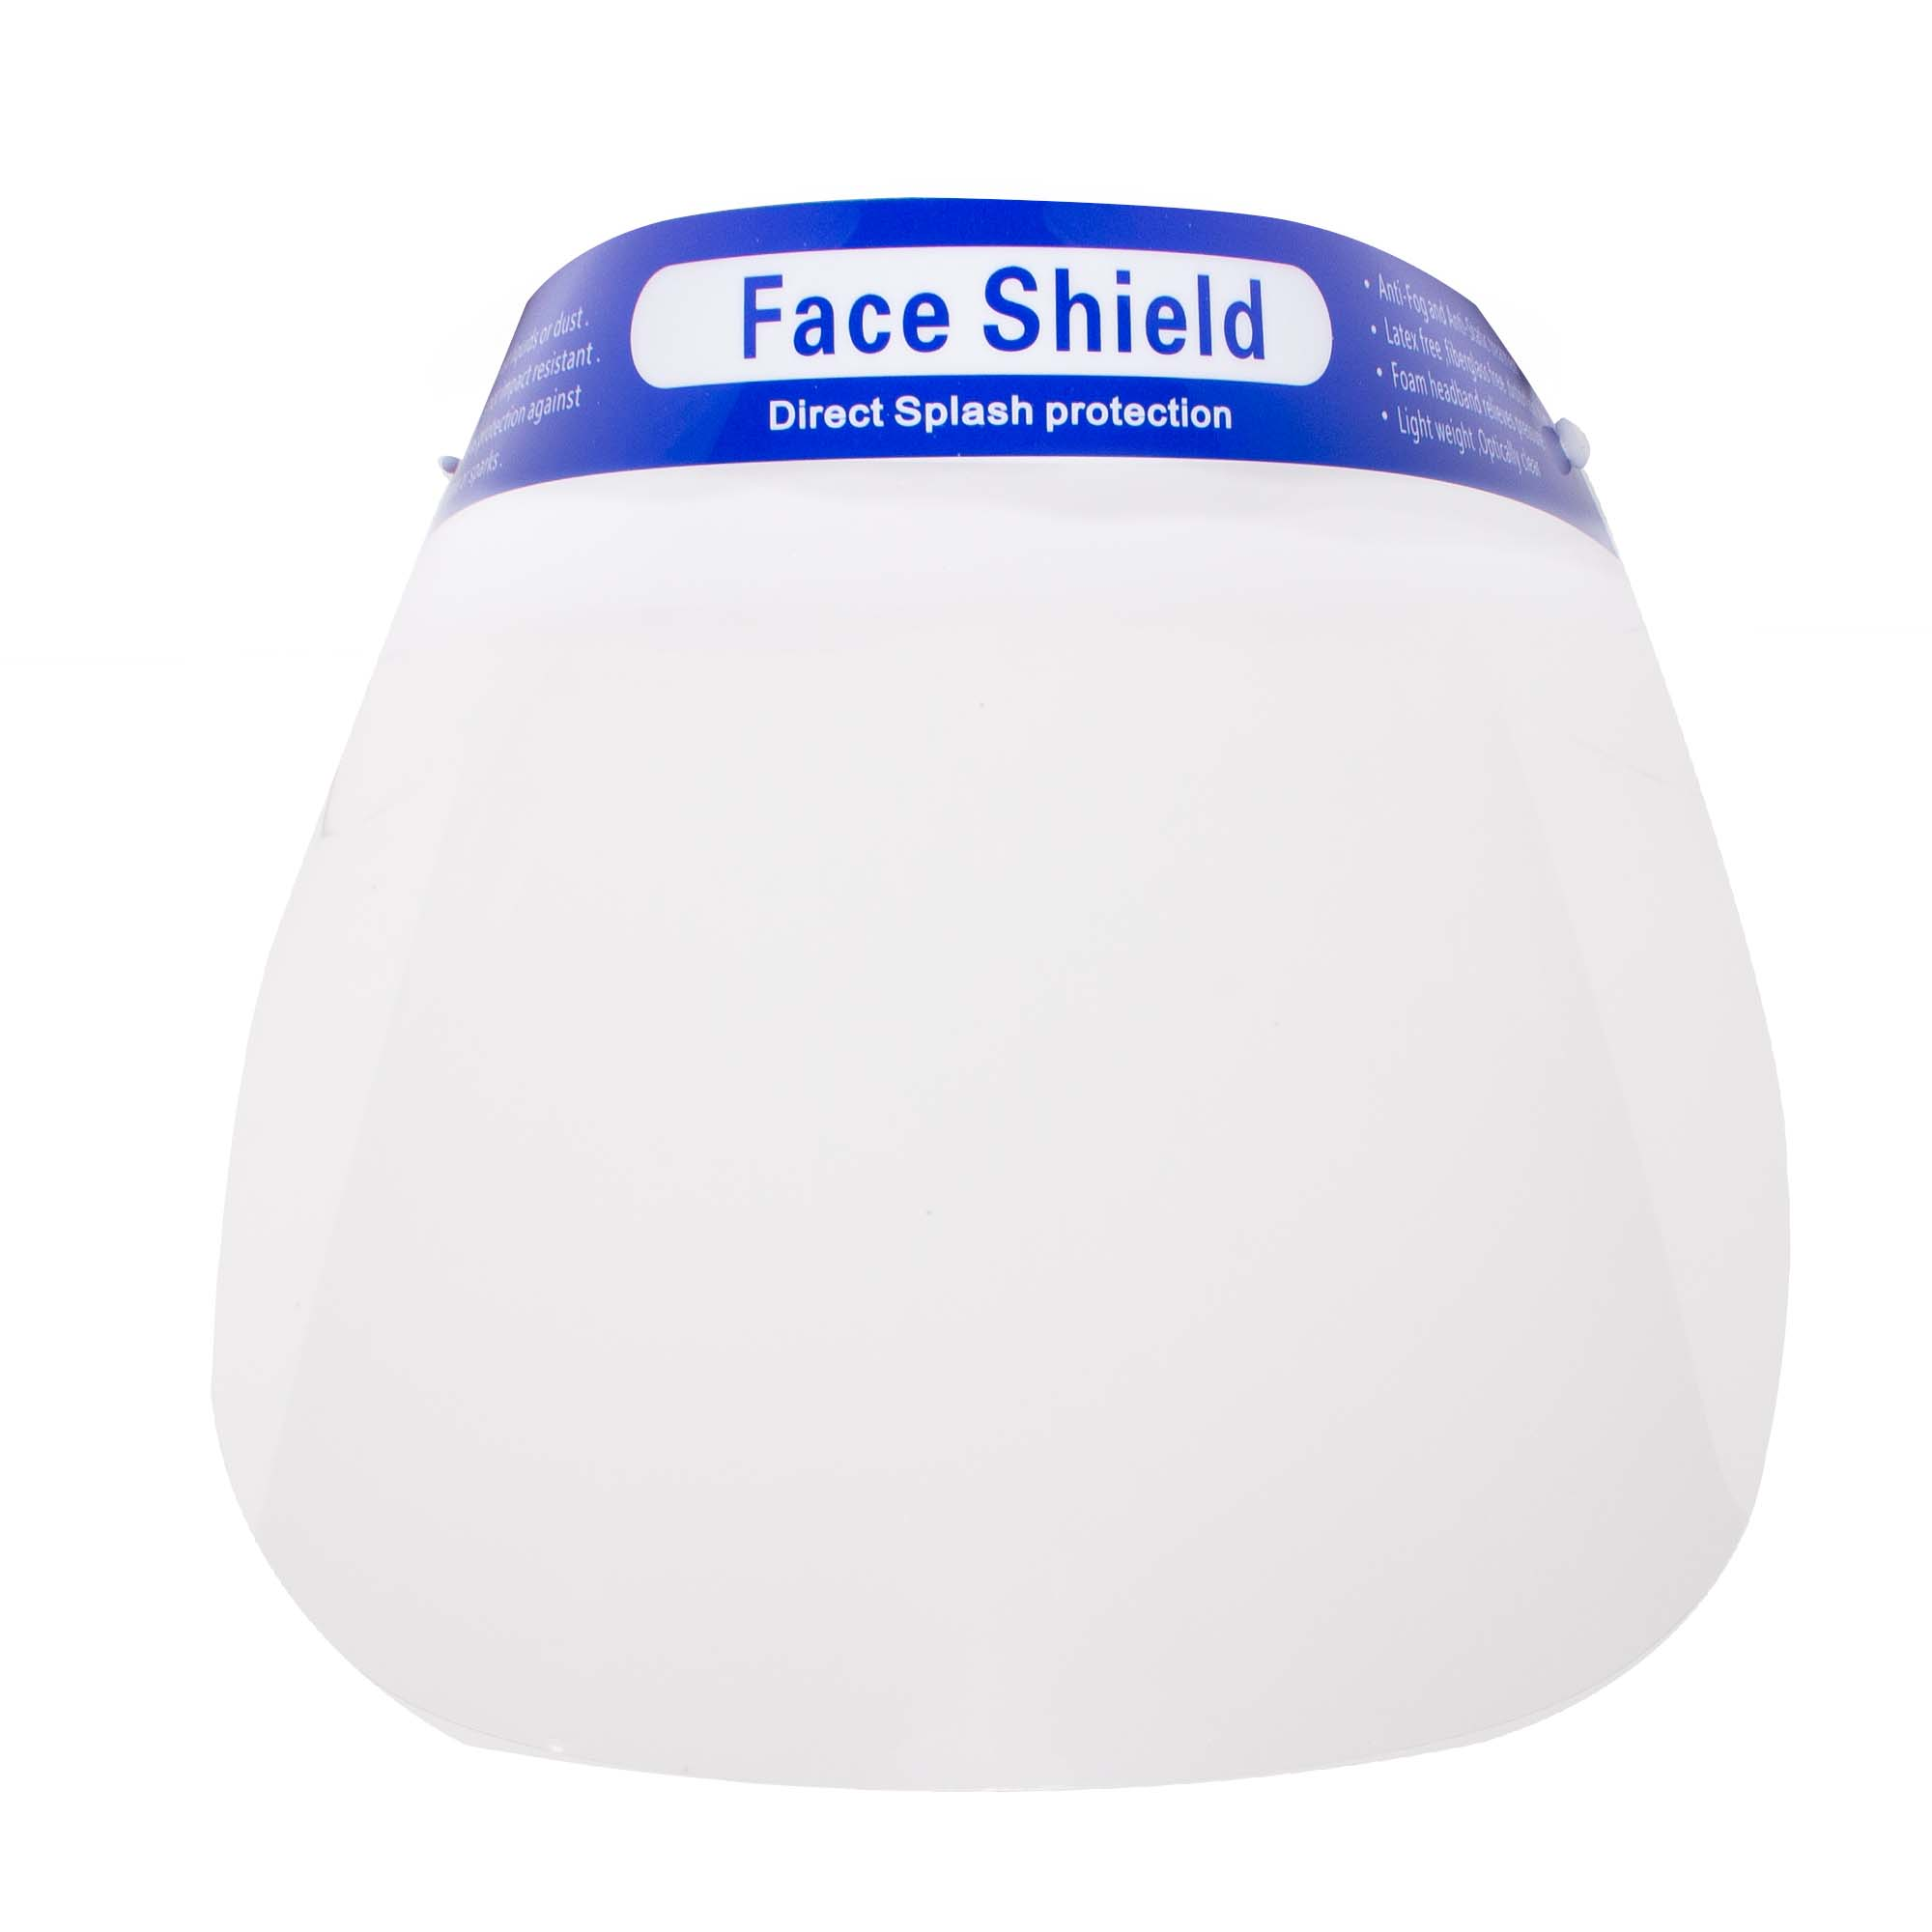 Splash Protection Face Shields